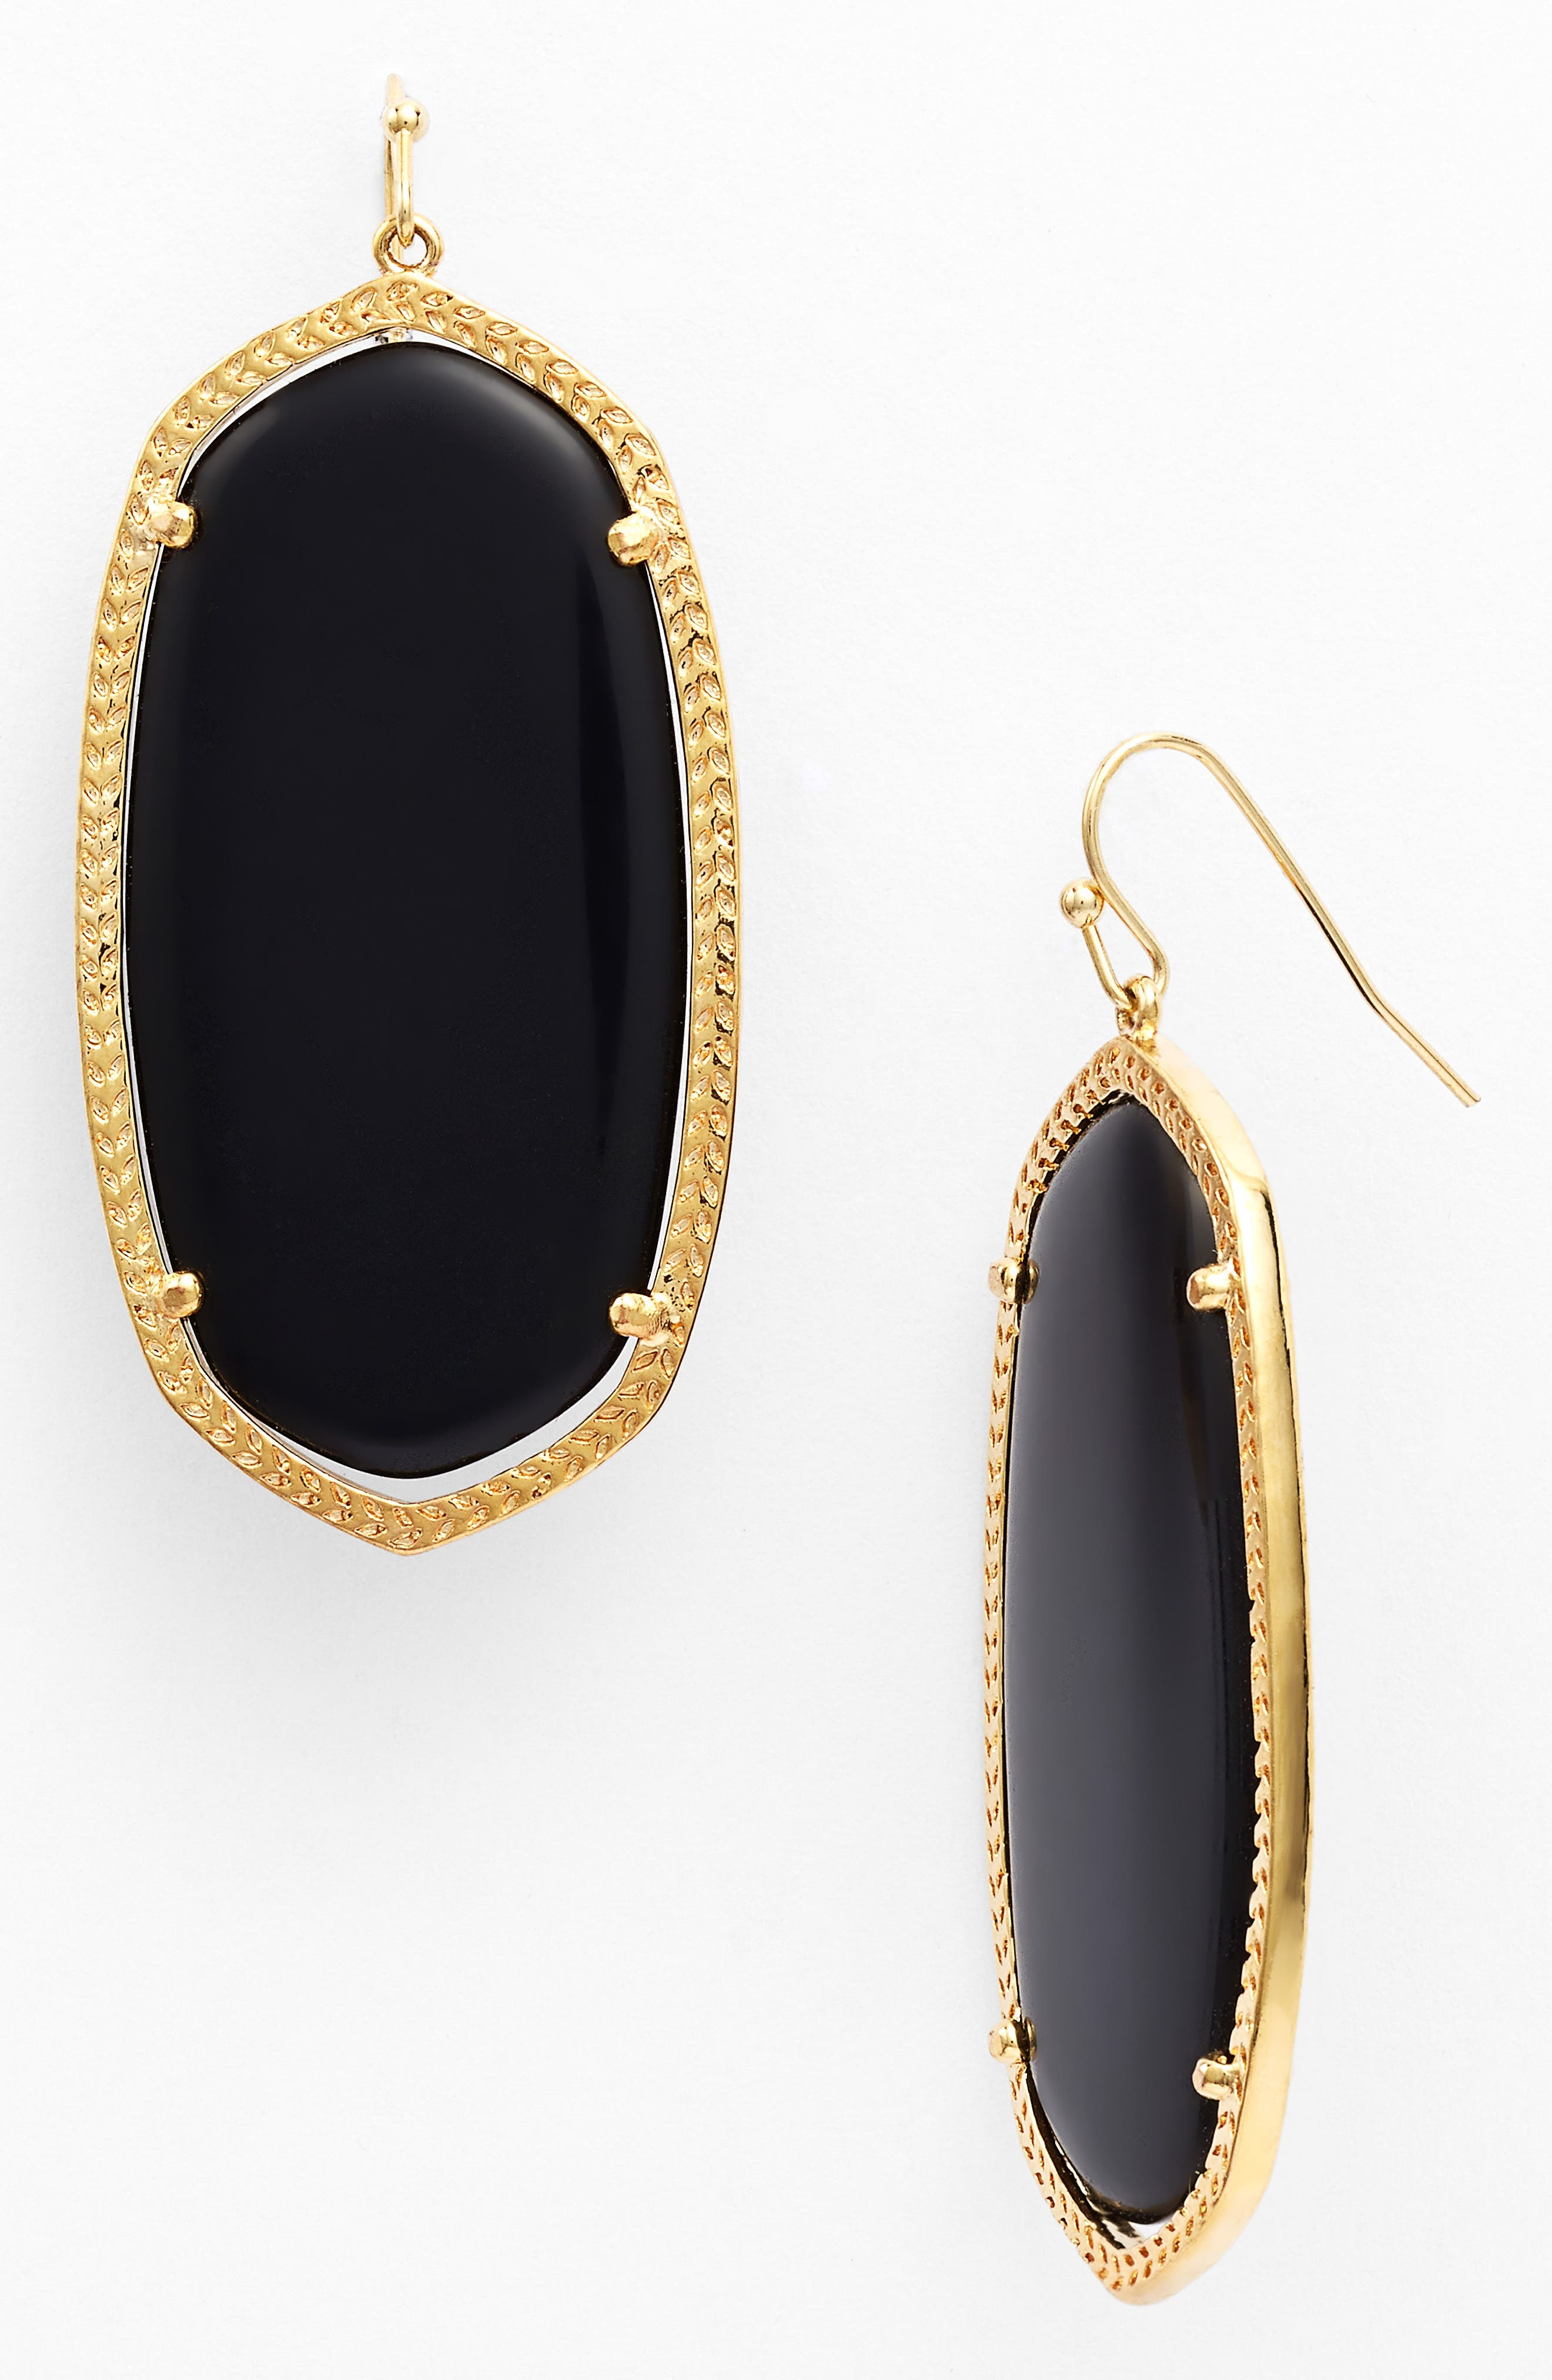 Danielle - Large Oval Statement Earrings,                         Main,                         color, Black/ Gold